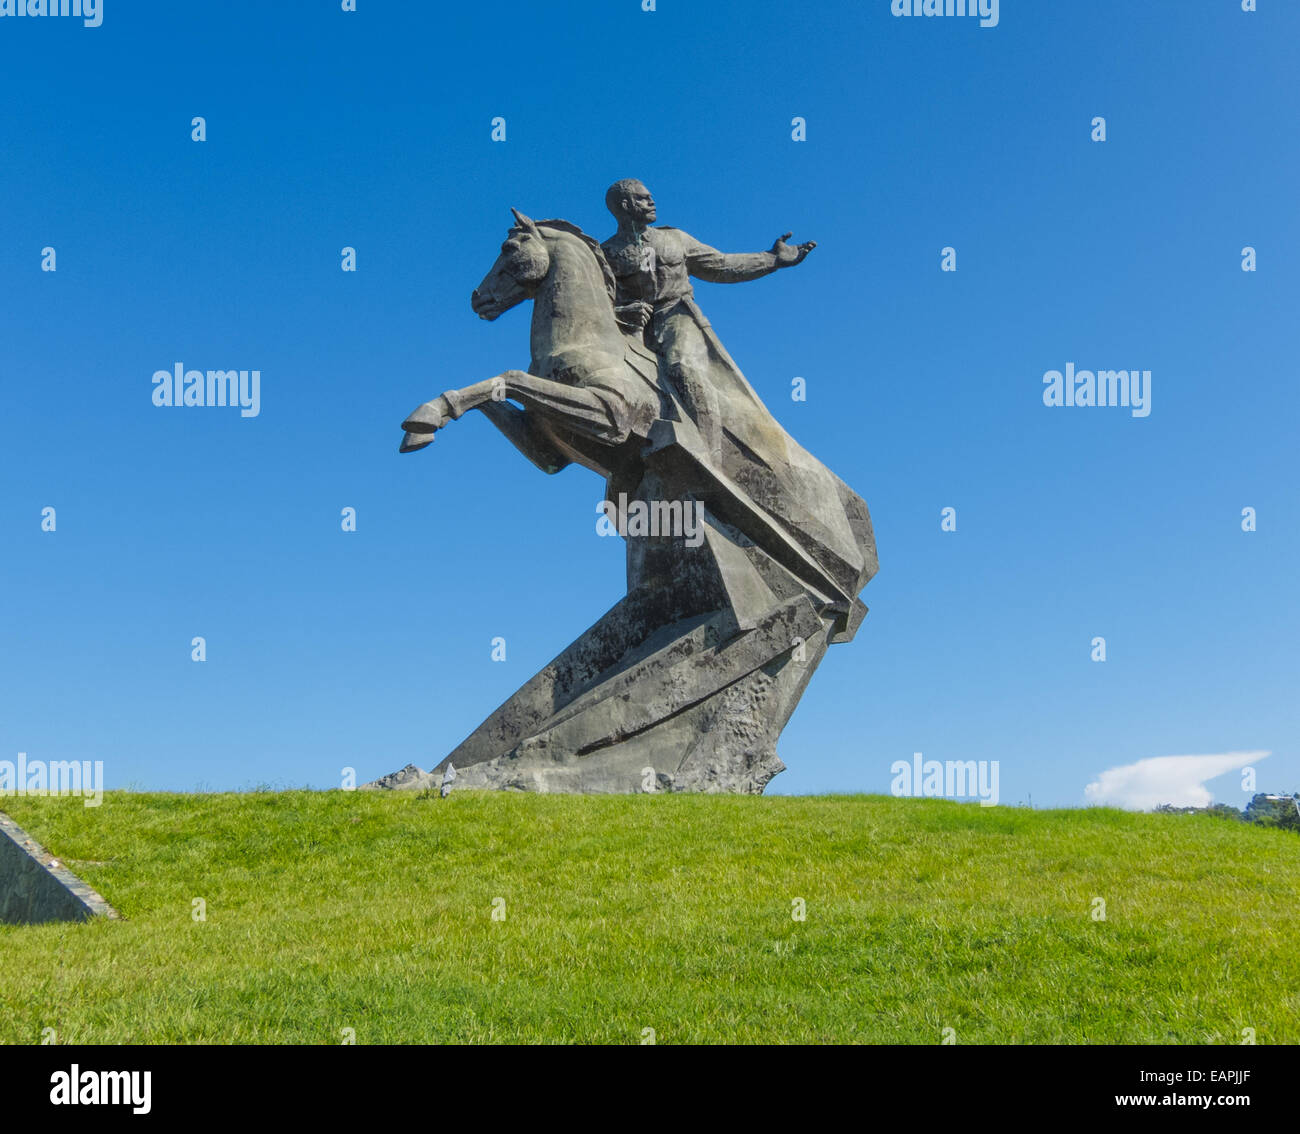 Monument of Lt. General José Antonio de la Caridad Maceo y Grajales on Plaza de la Revolucion in Santiago de - Stock Image